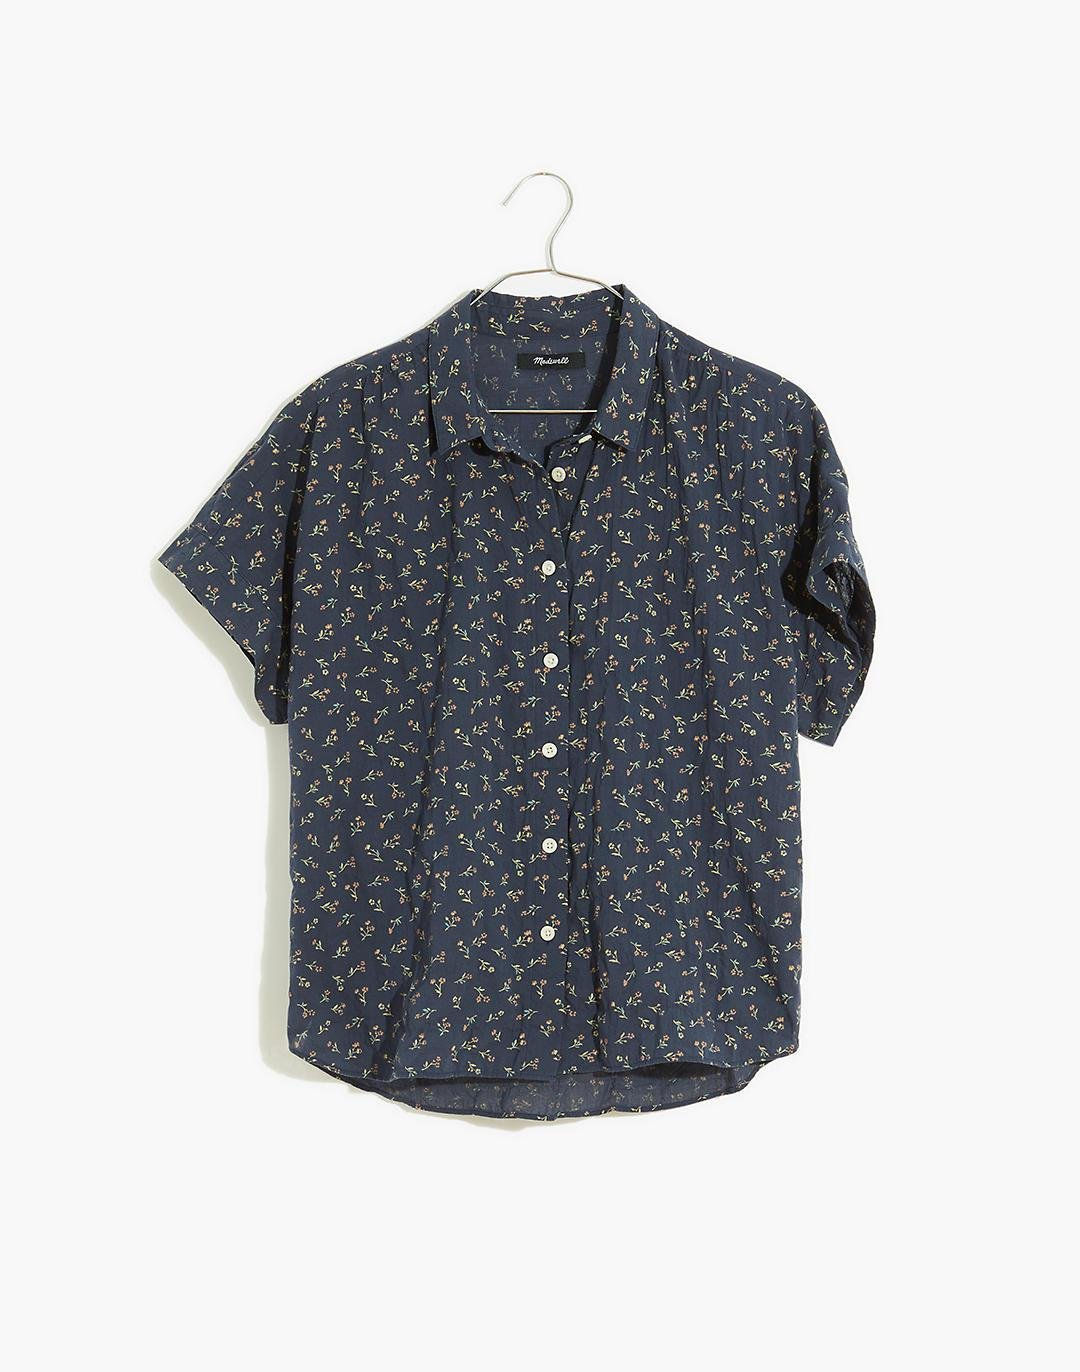 Hilltop Shirt in Adorable Ditsy 3